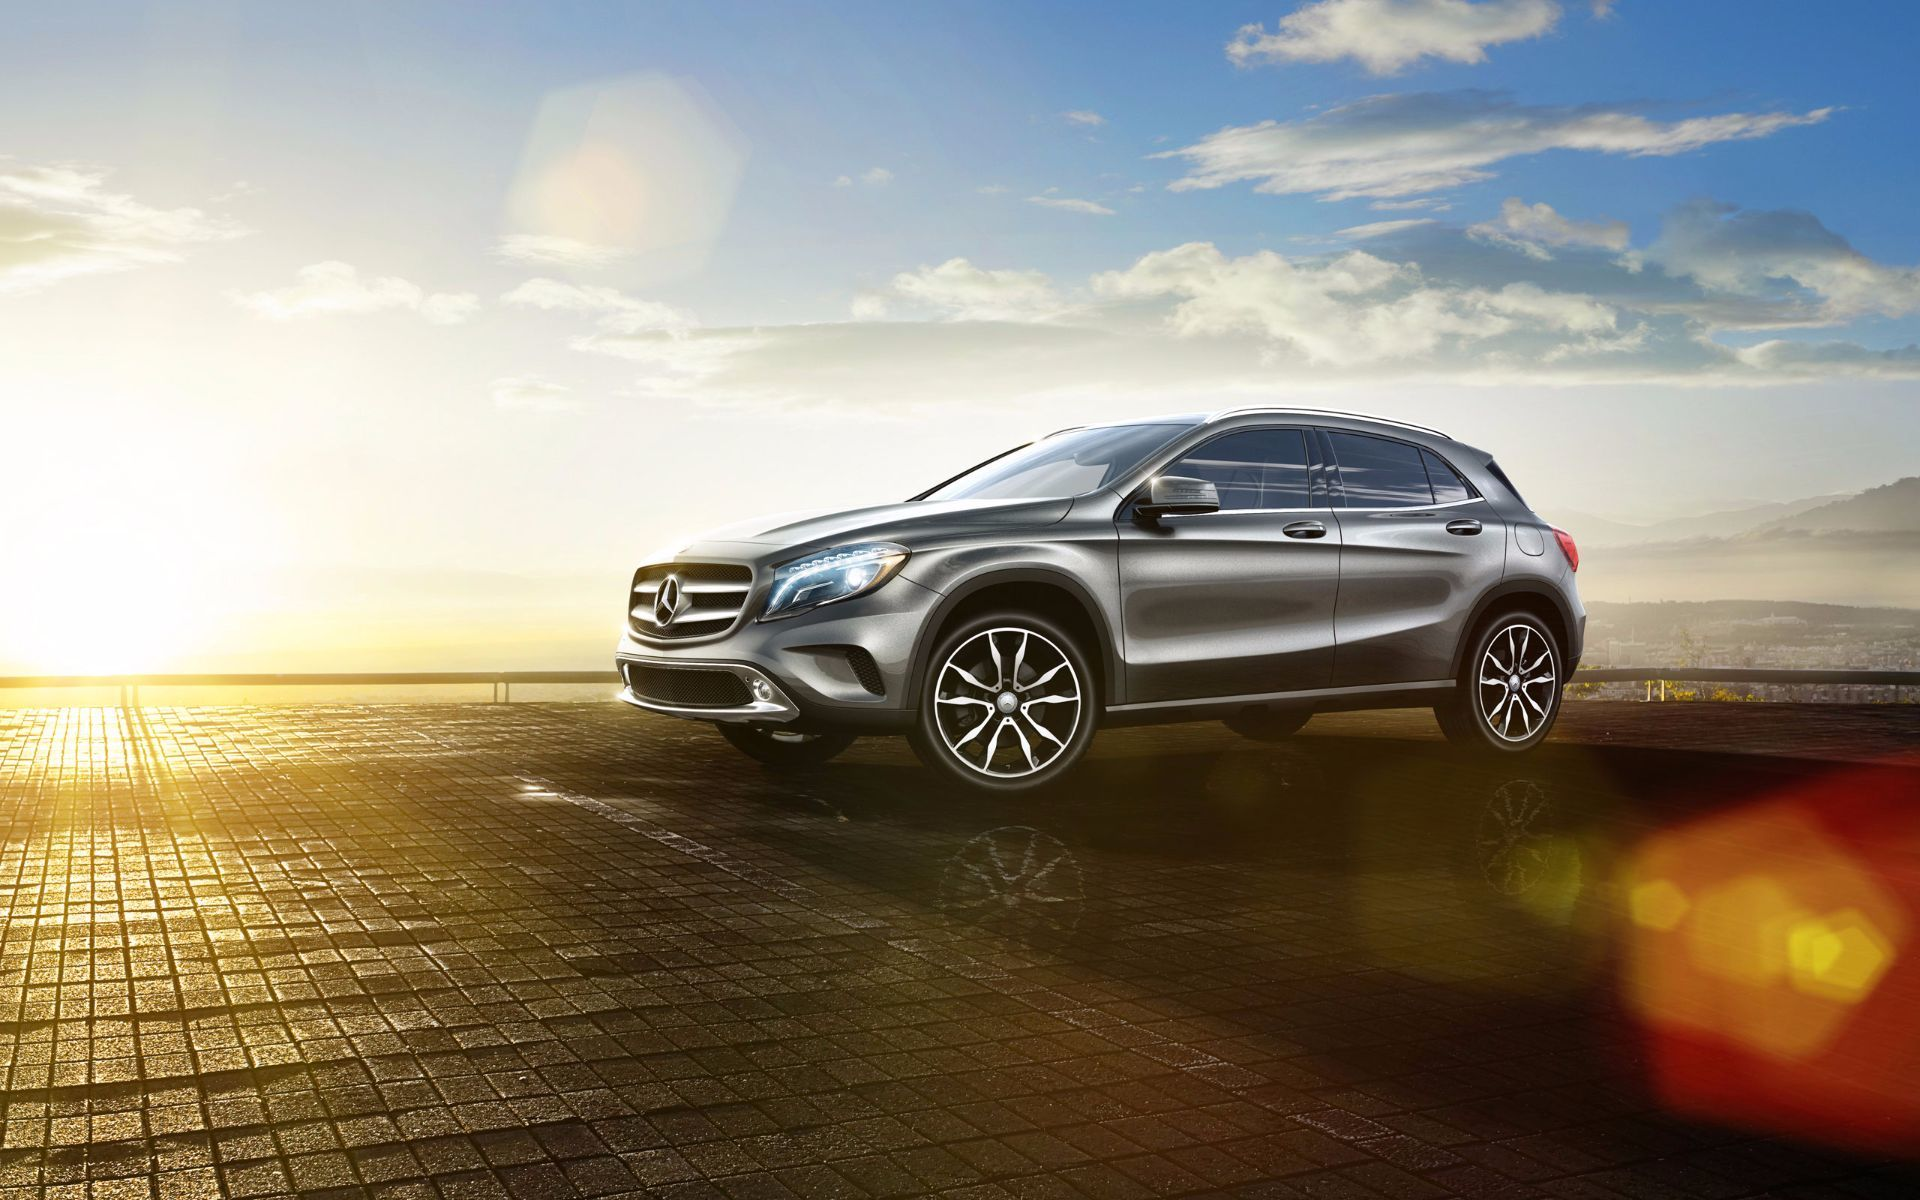 autoevolution an small won benz suv build t built smaller the than mercedes news gla photos